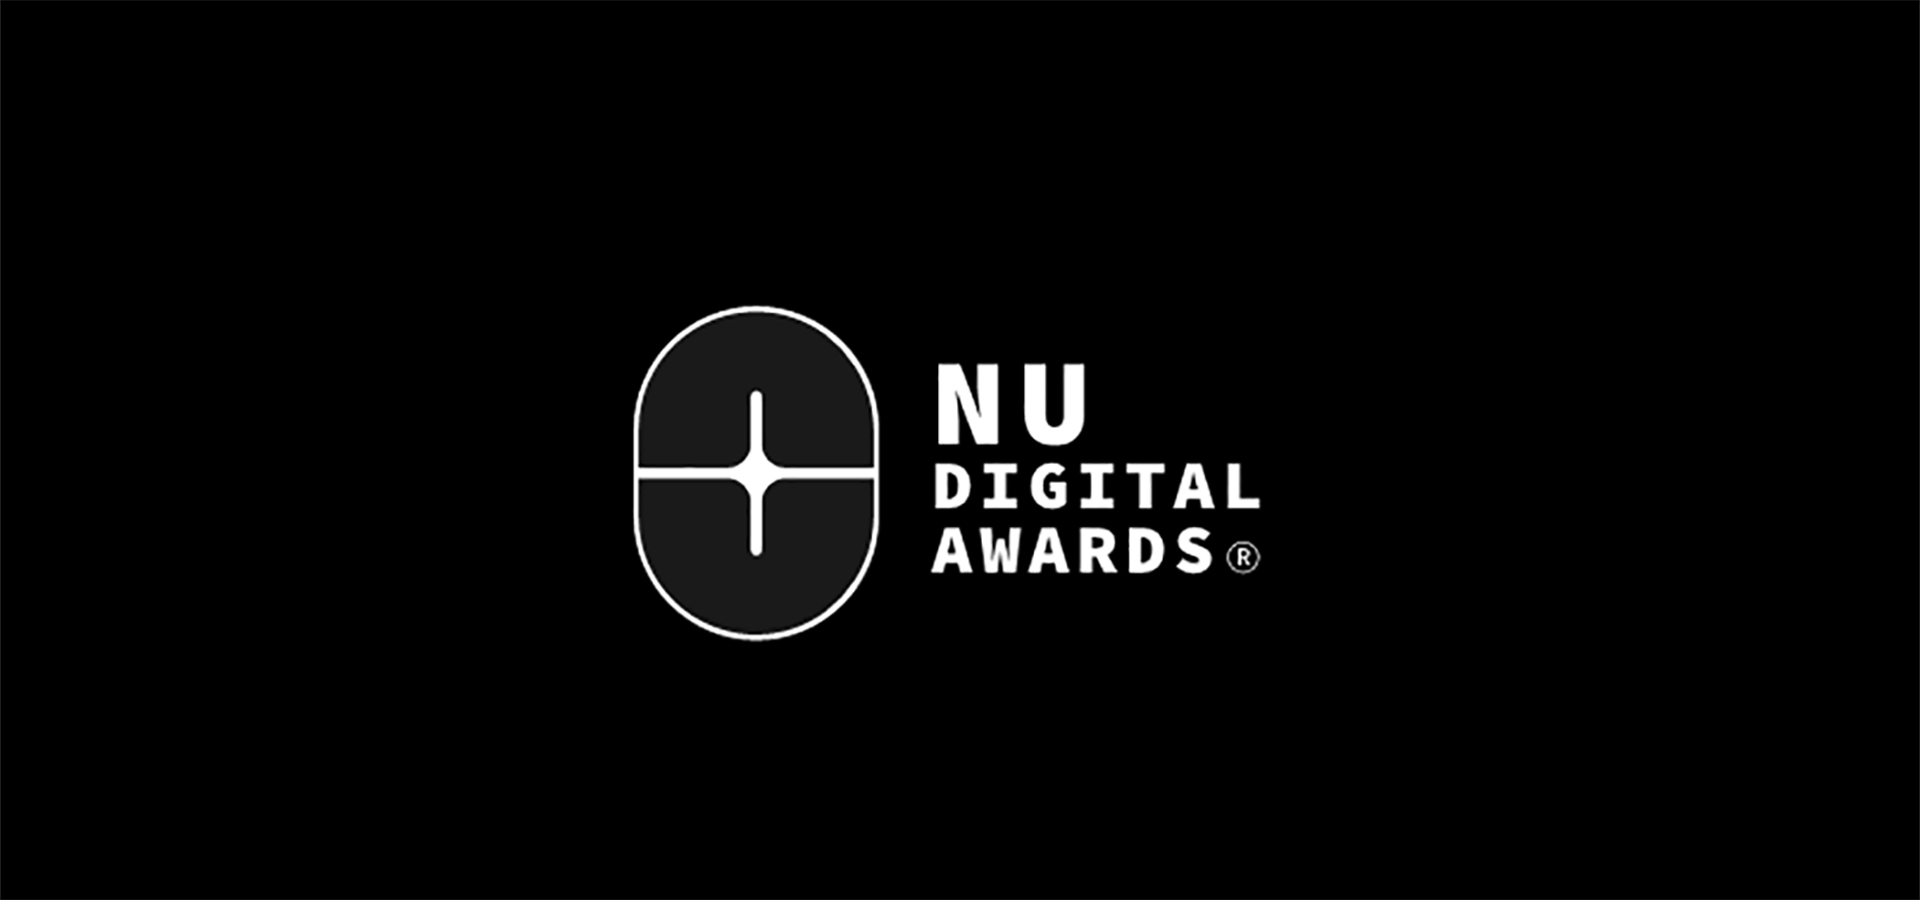 NU Digital Awards Launches in 2020 with BMW Egypt as Official Partner